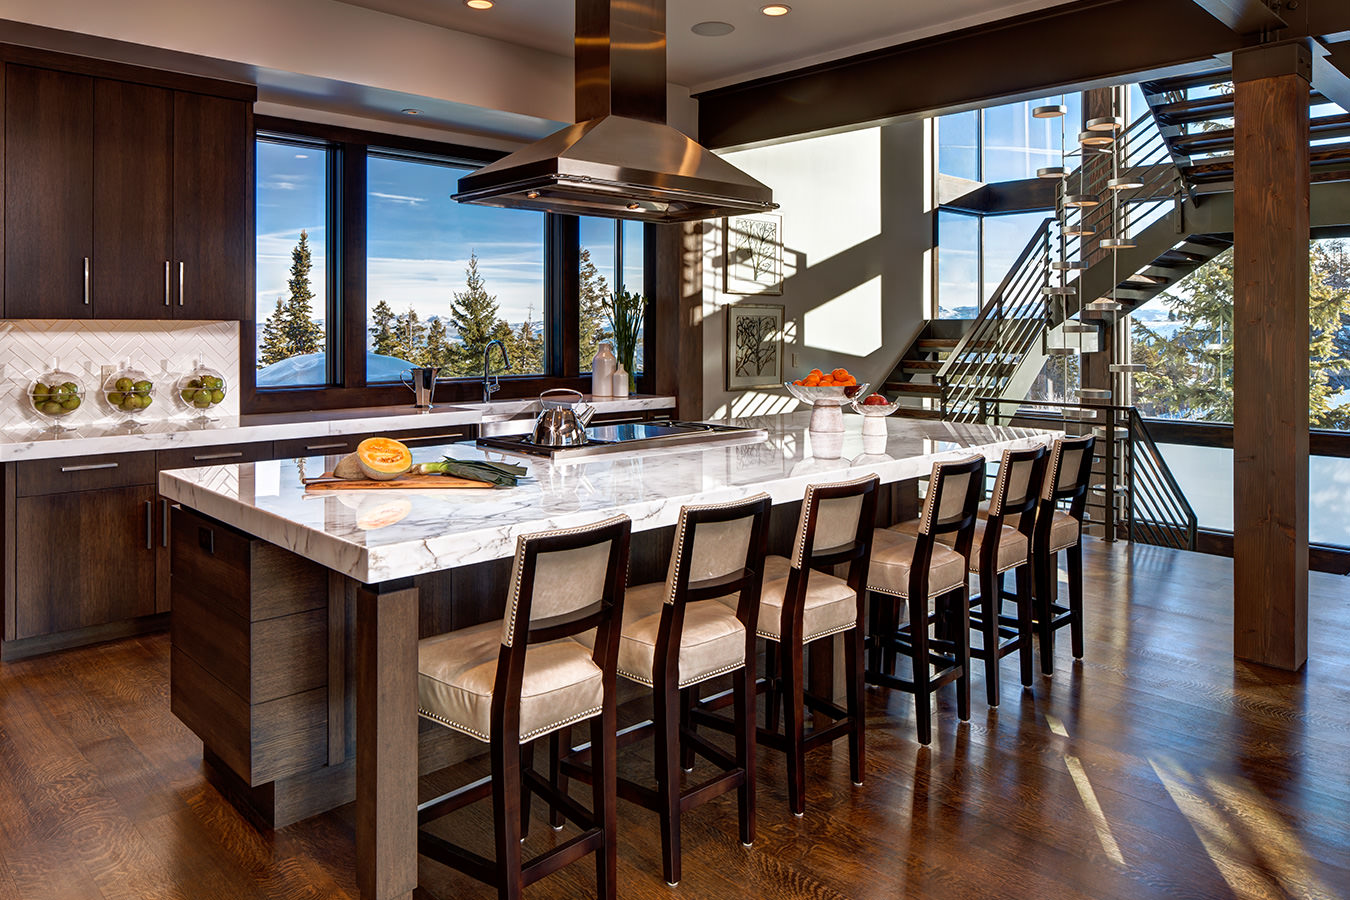 Spacious kitchen at our luxury Deer Valley vacation rental with high end finishes and appliances and views of Deer Valley